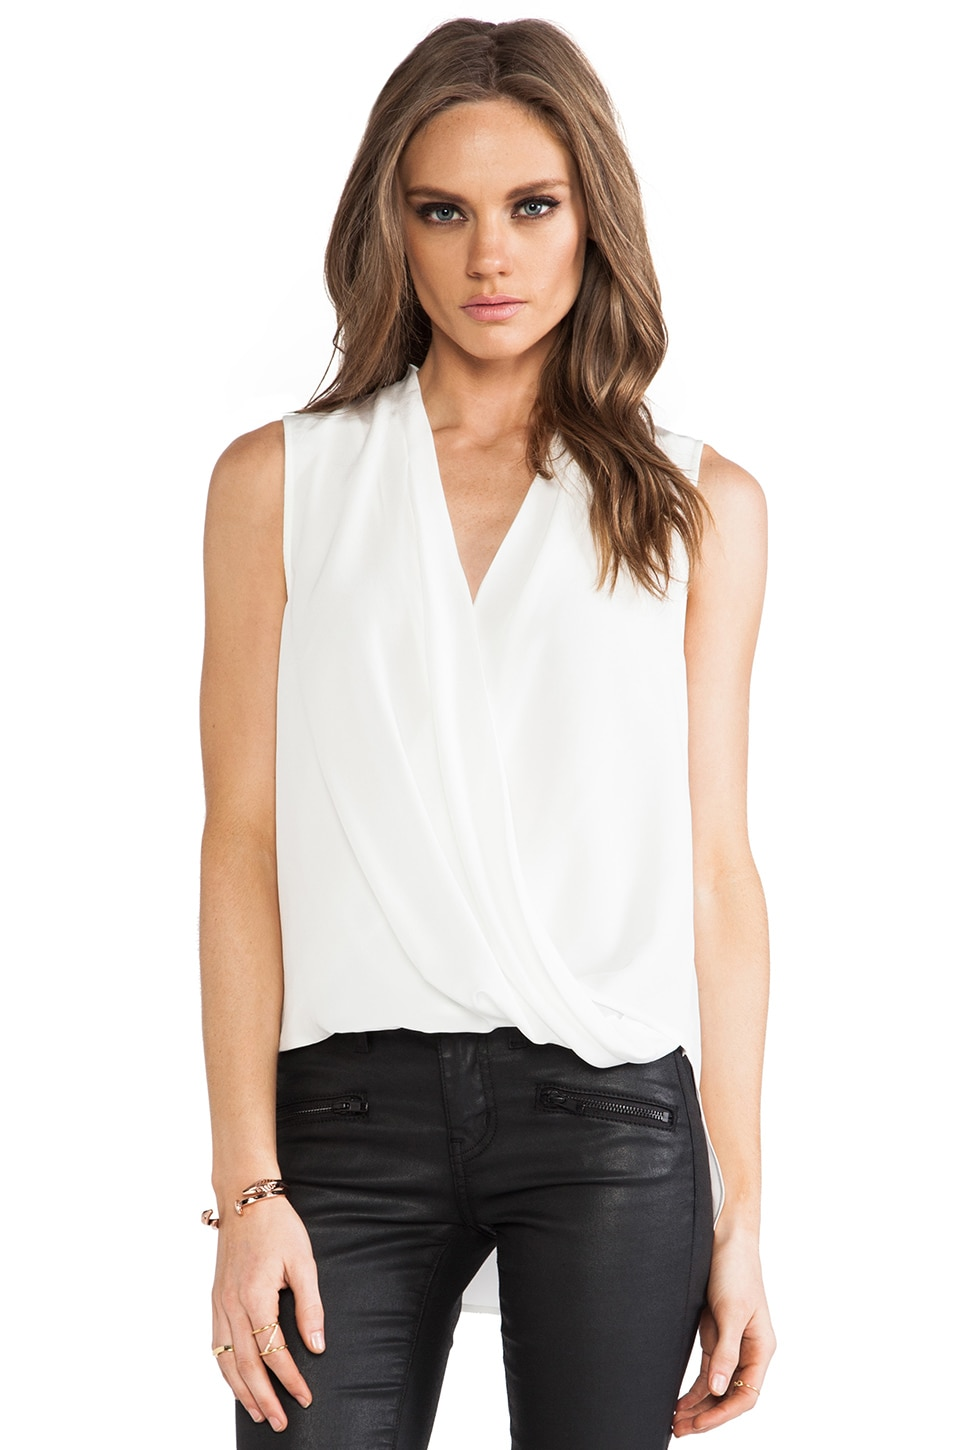 Trina Turk Muriel Top in Whitewash